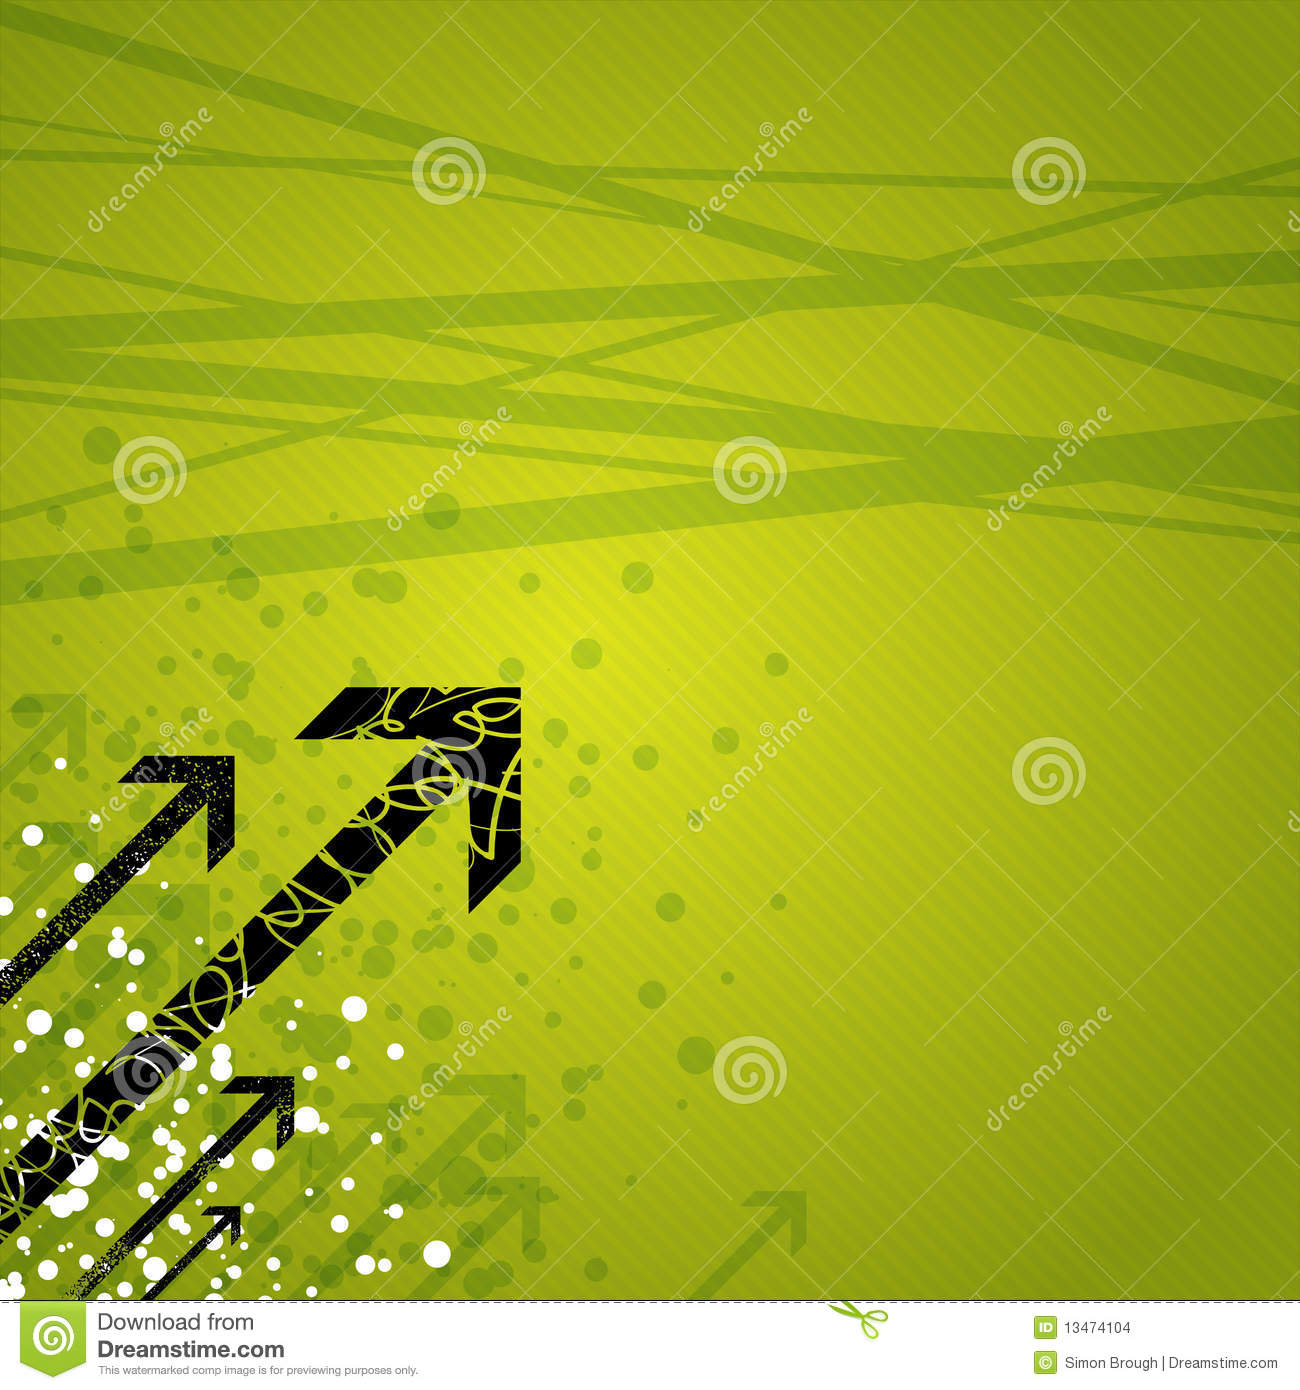 arrows on green background stock vector illustration of